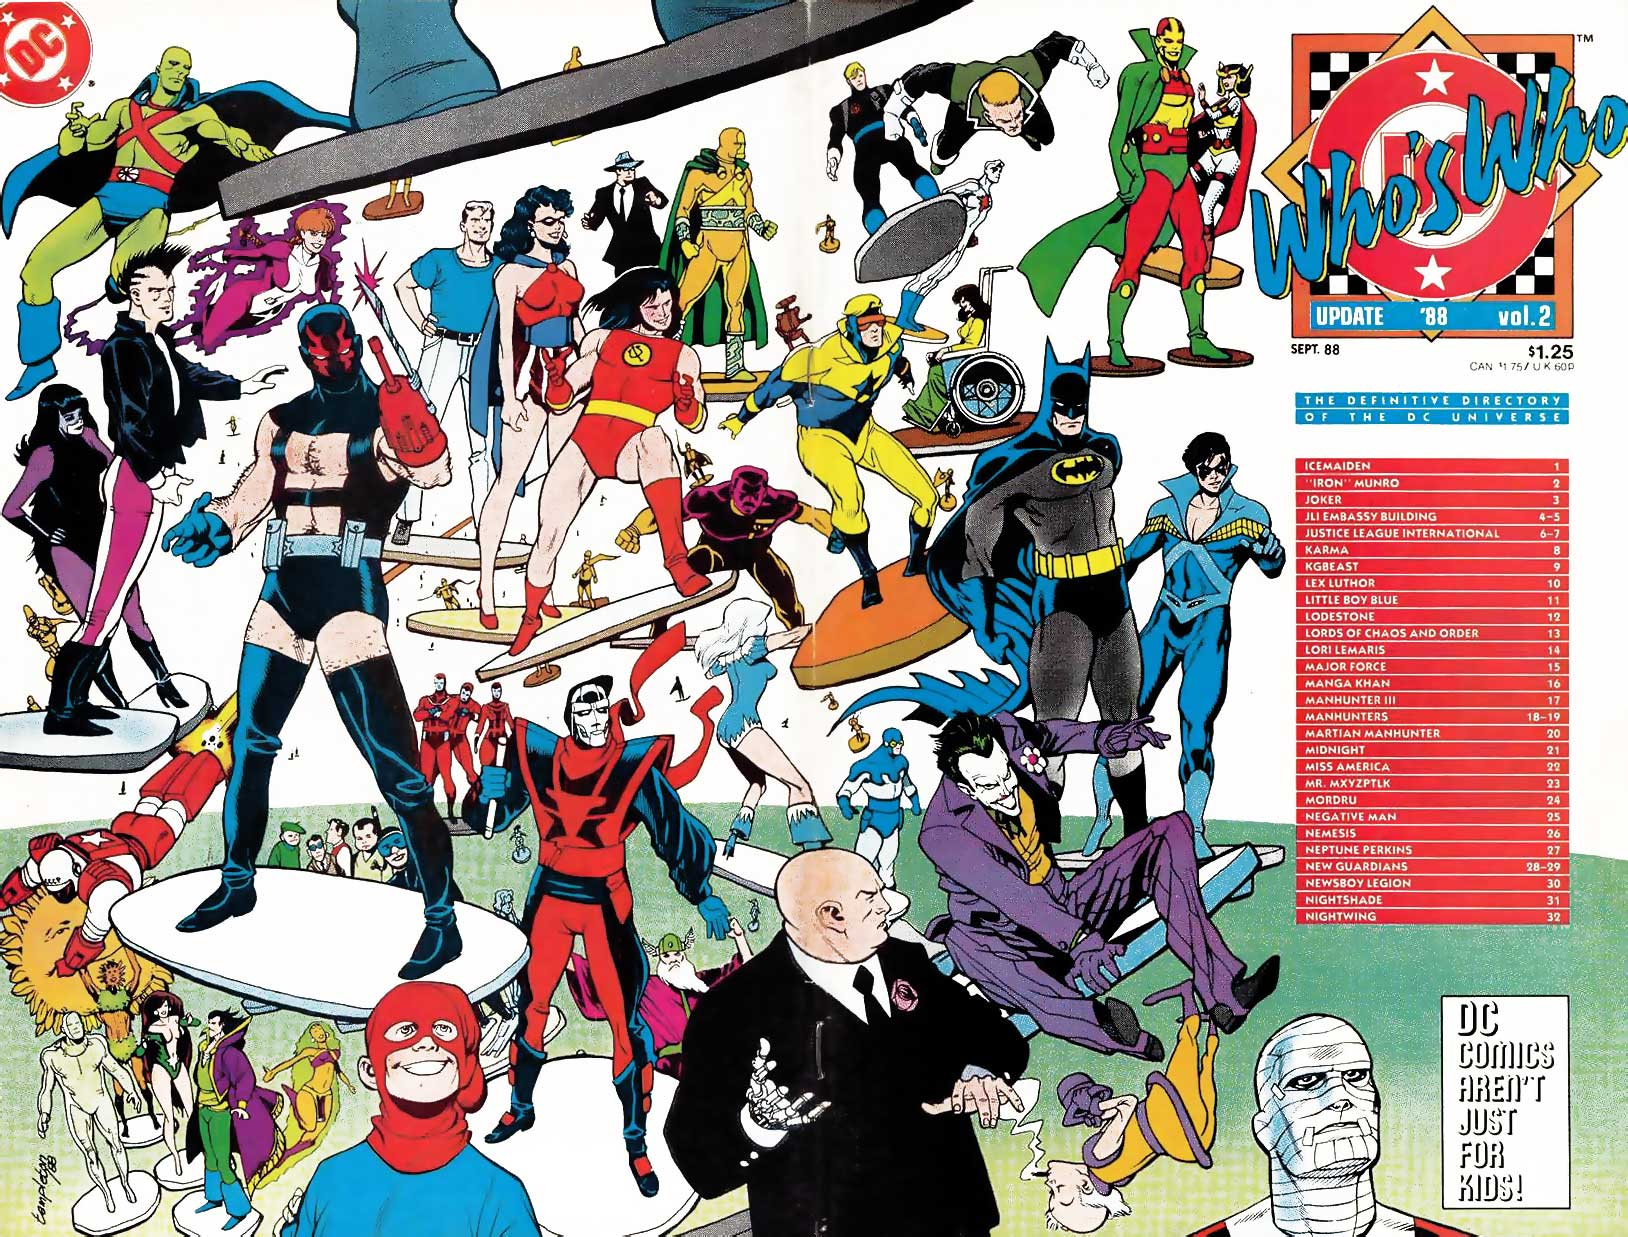 Who's Who Update 88 #2 cover by Ty Templeton